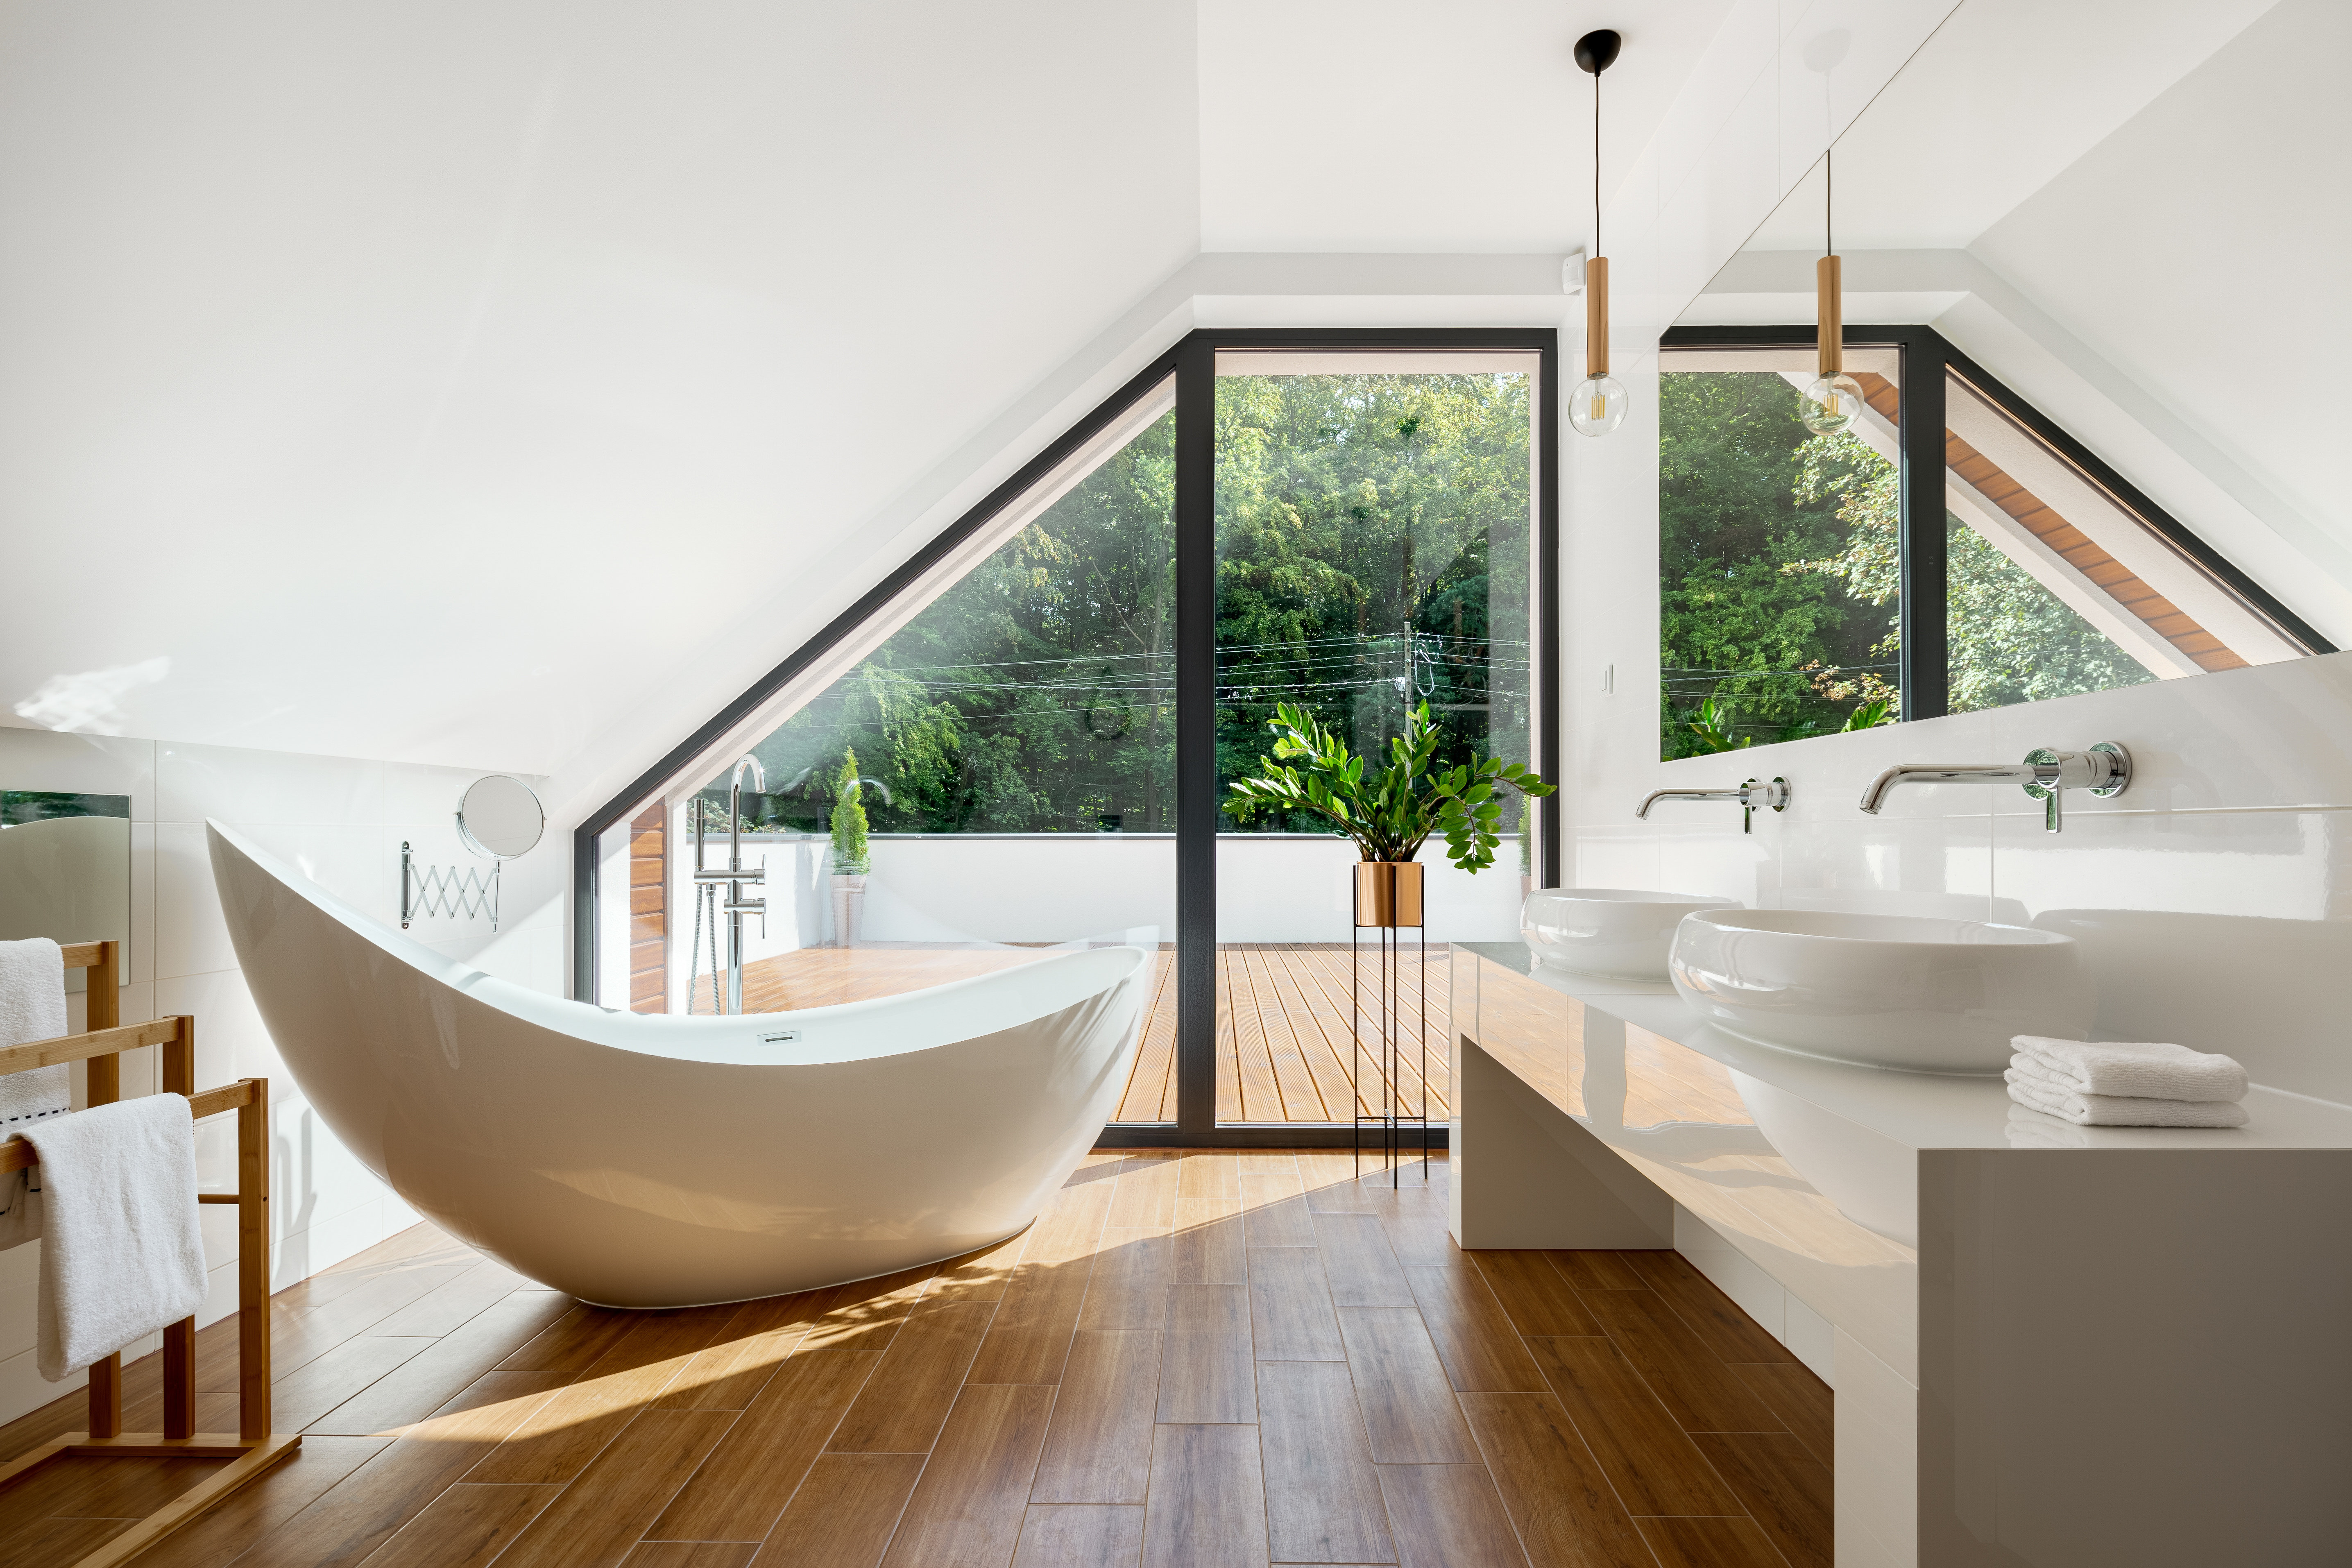 Bathroom Design Trends Coming In 2021 Residential Products Online